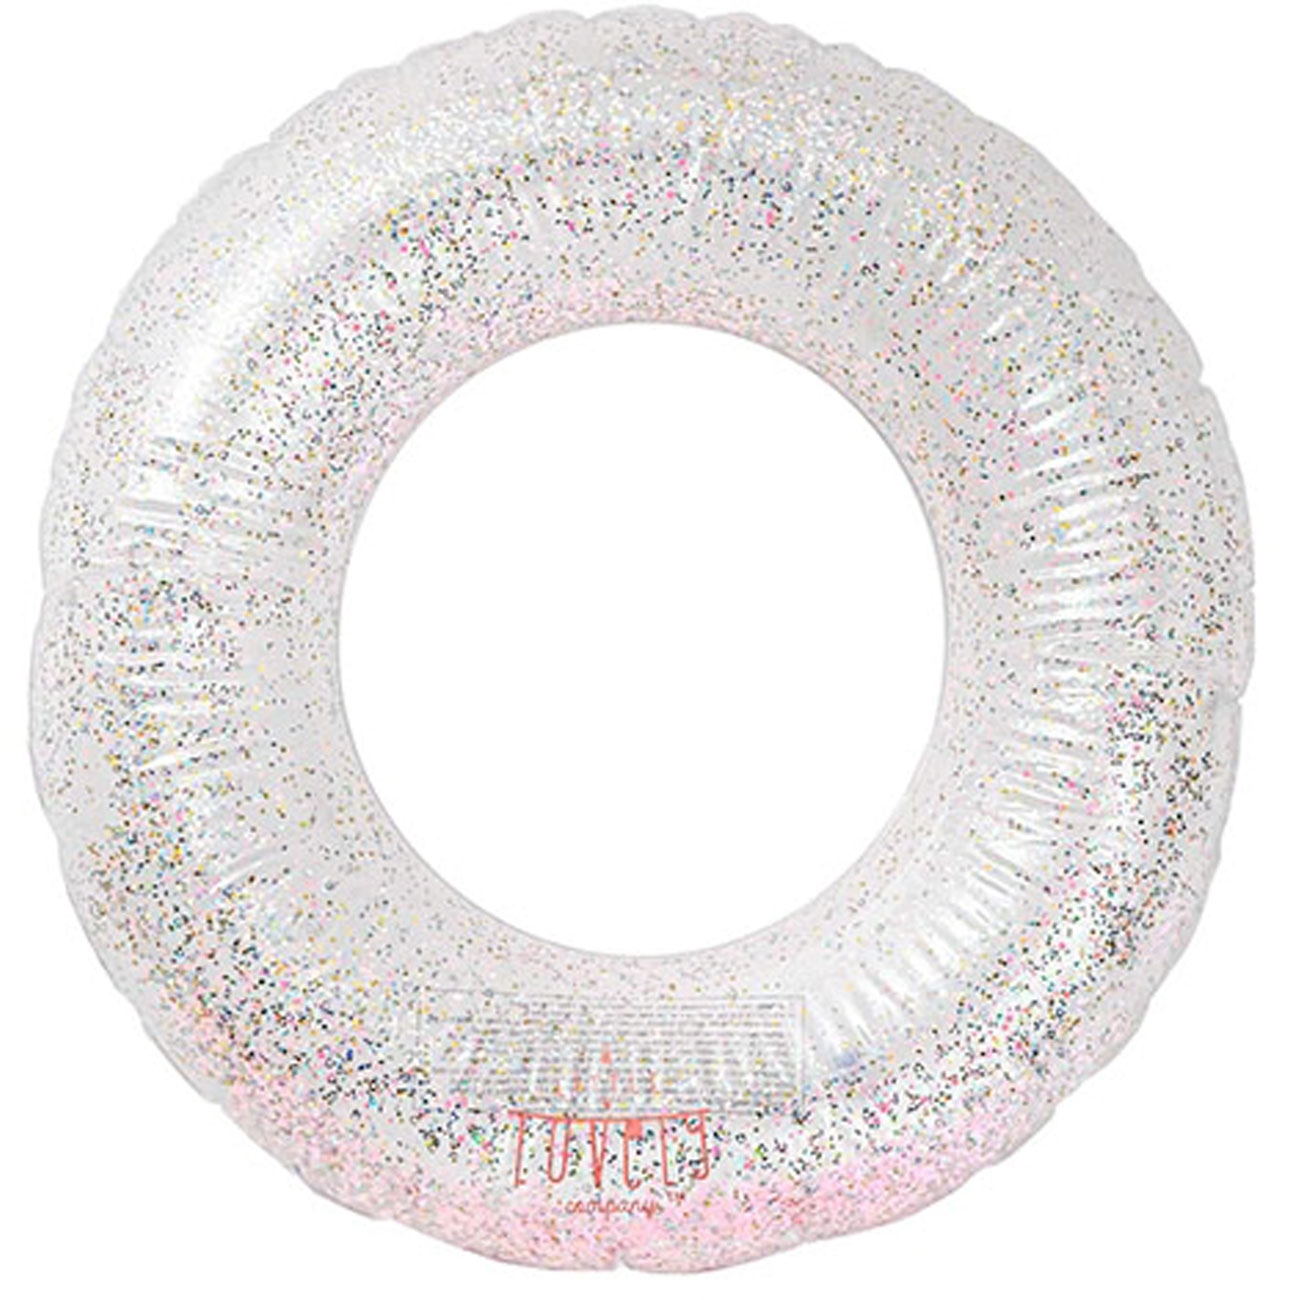 A Little Lovely Company Glitter Swim Ring